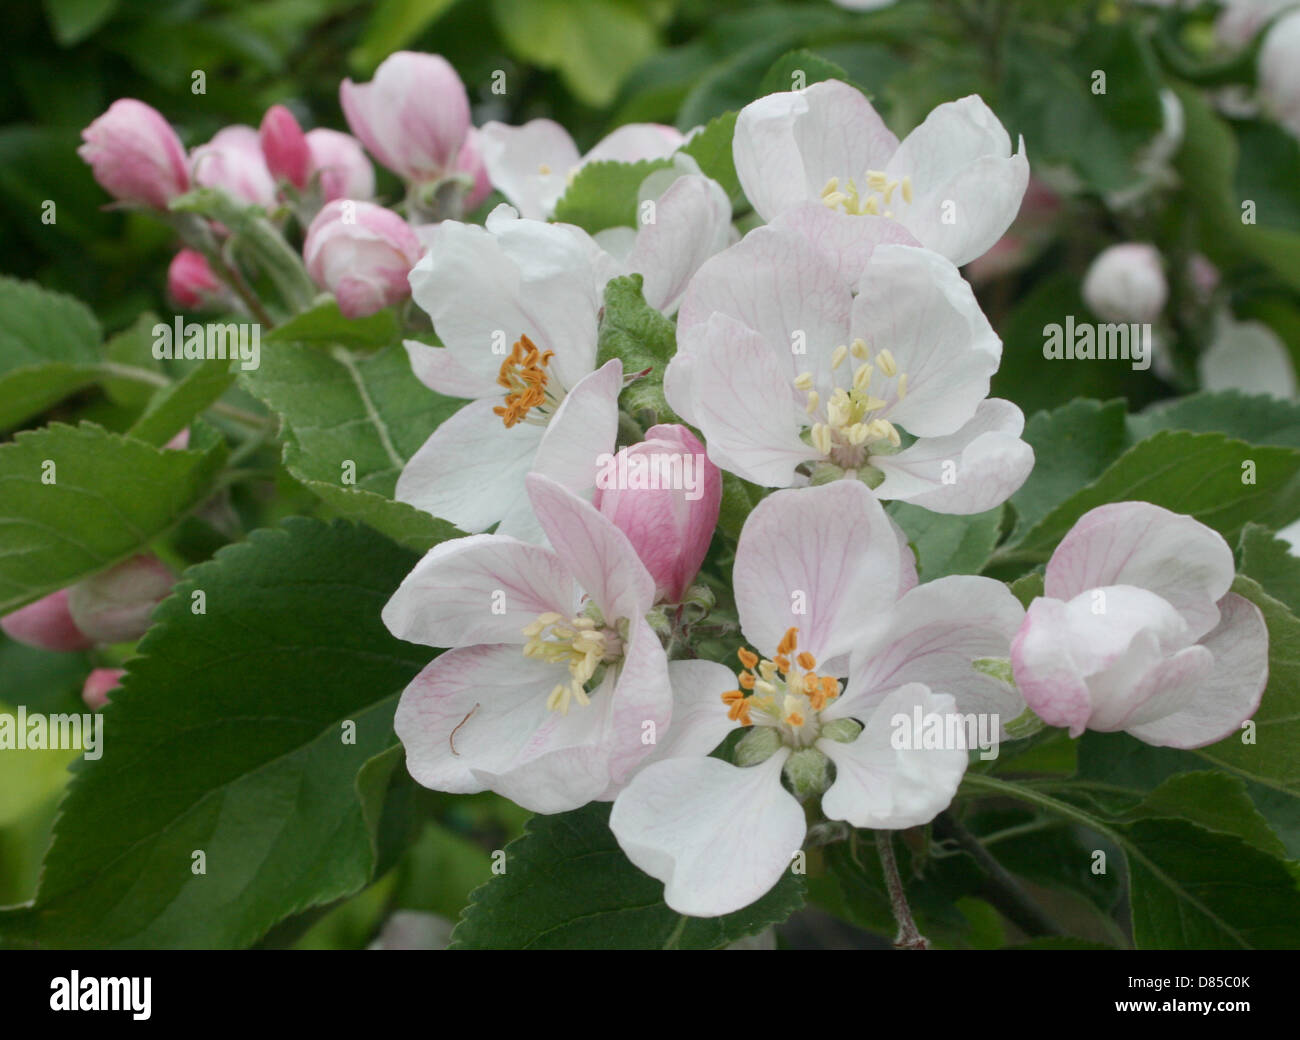 Bramley Apple Blossom, beautiful pink buds that form paler pink blossom with dark green serrated leaves. - Stock Image